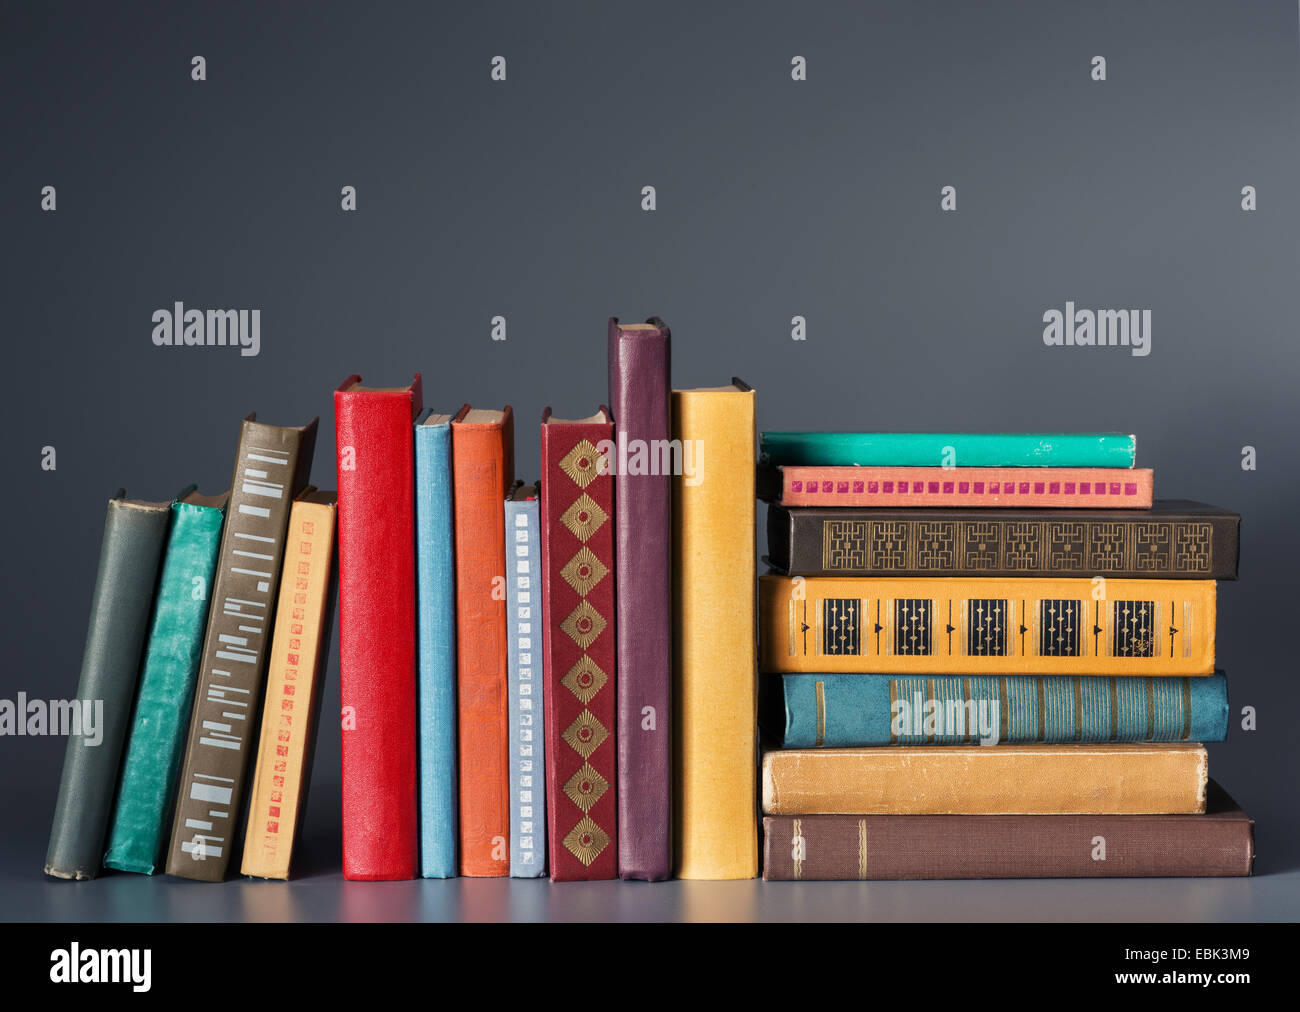 Books on a dark background - Stock Image